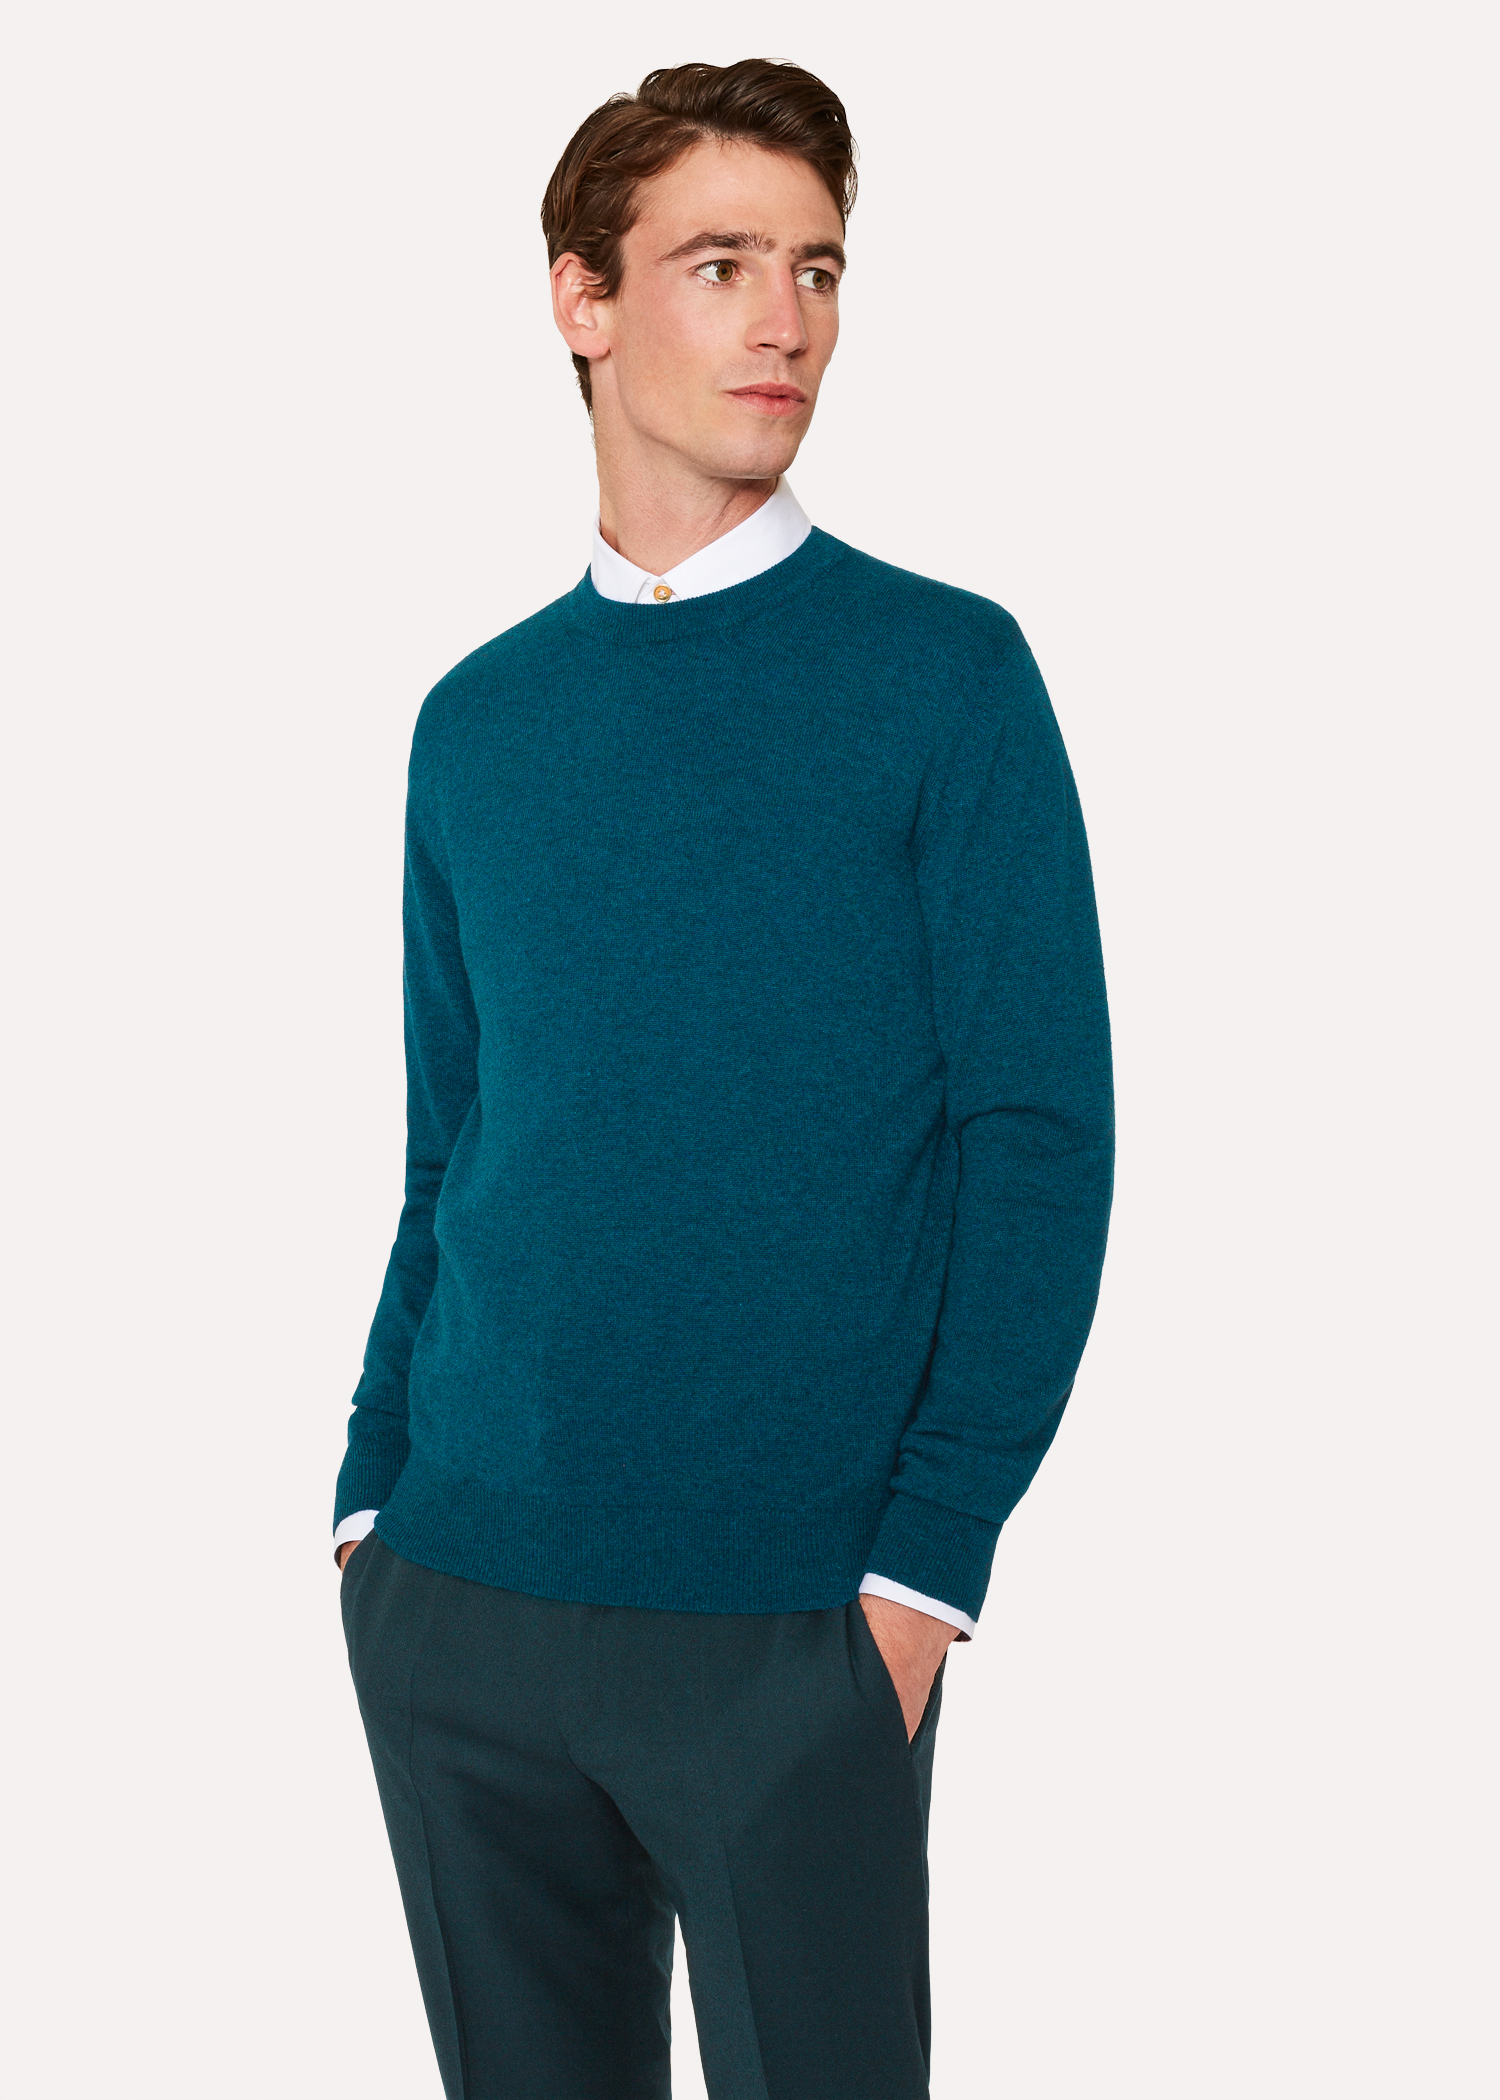 f775e15bb20 Men s Teal Cashmere Crew Neck Sweater - Paul Smith Denmark